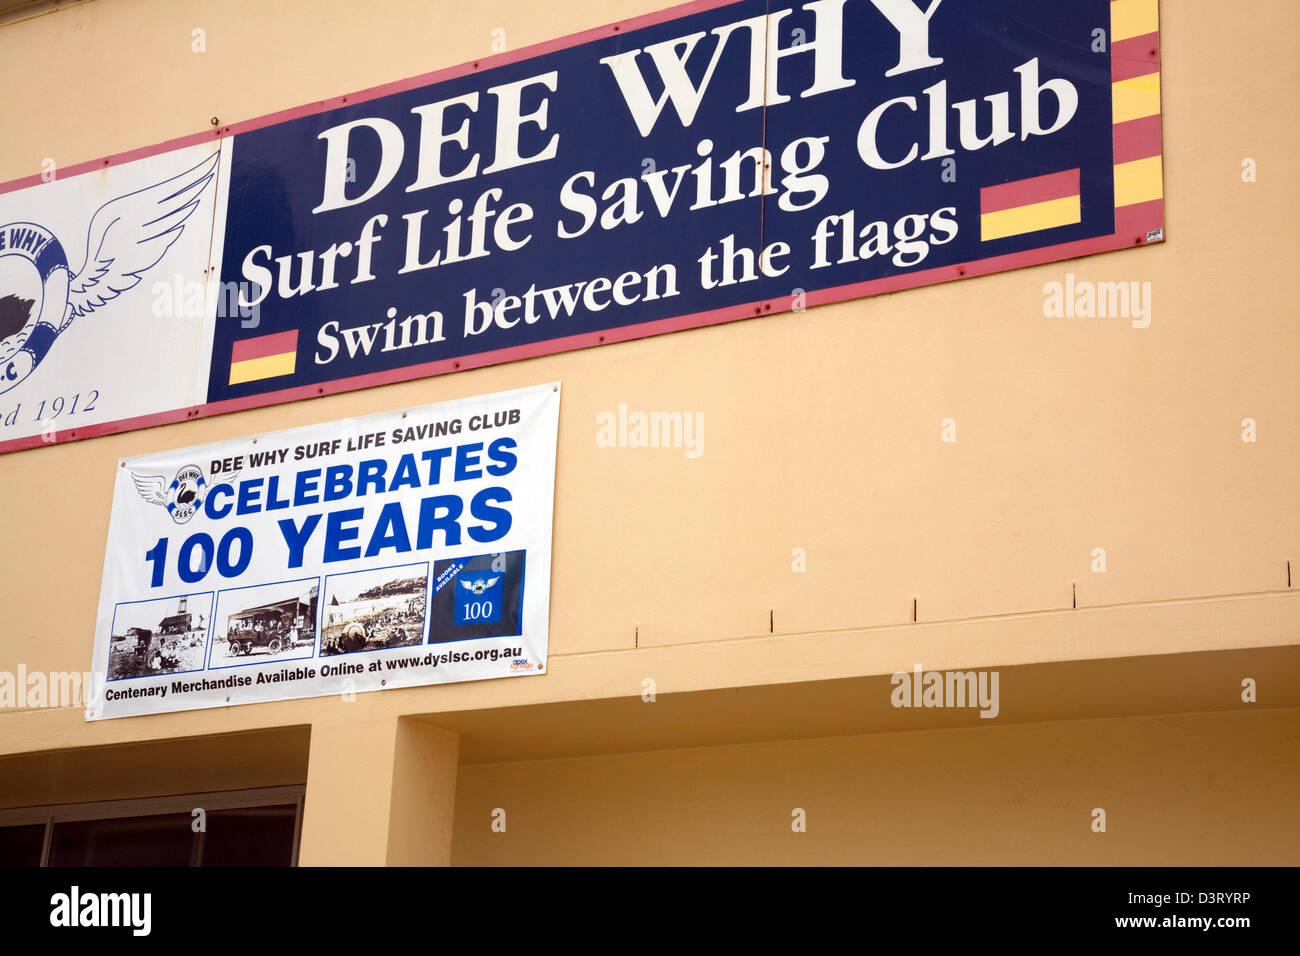 dee why surf life saving club on sydney's northern beaches